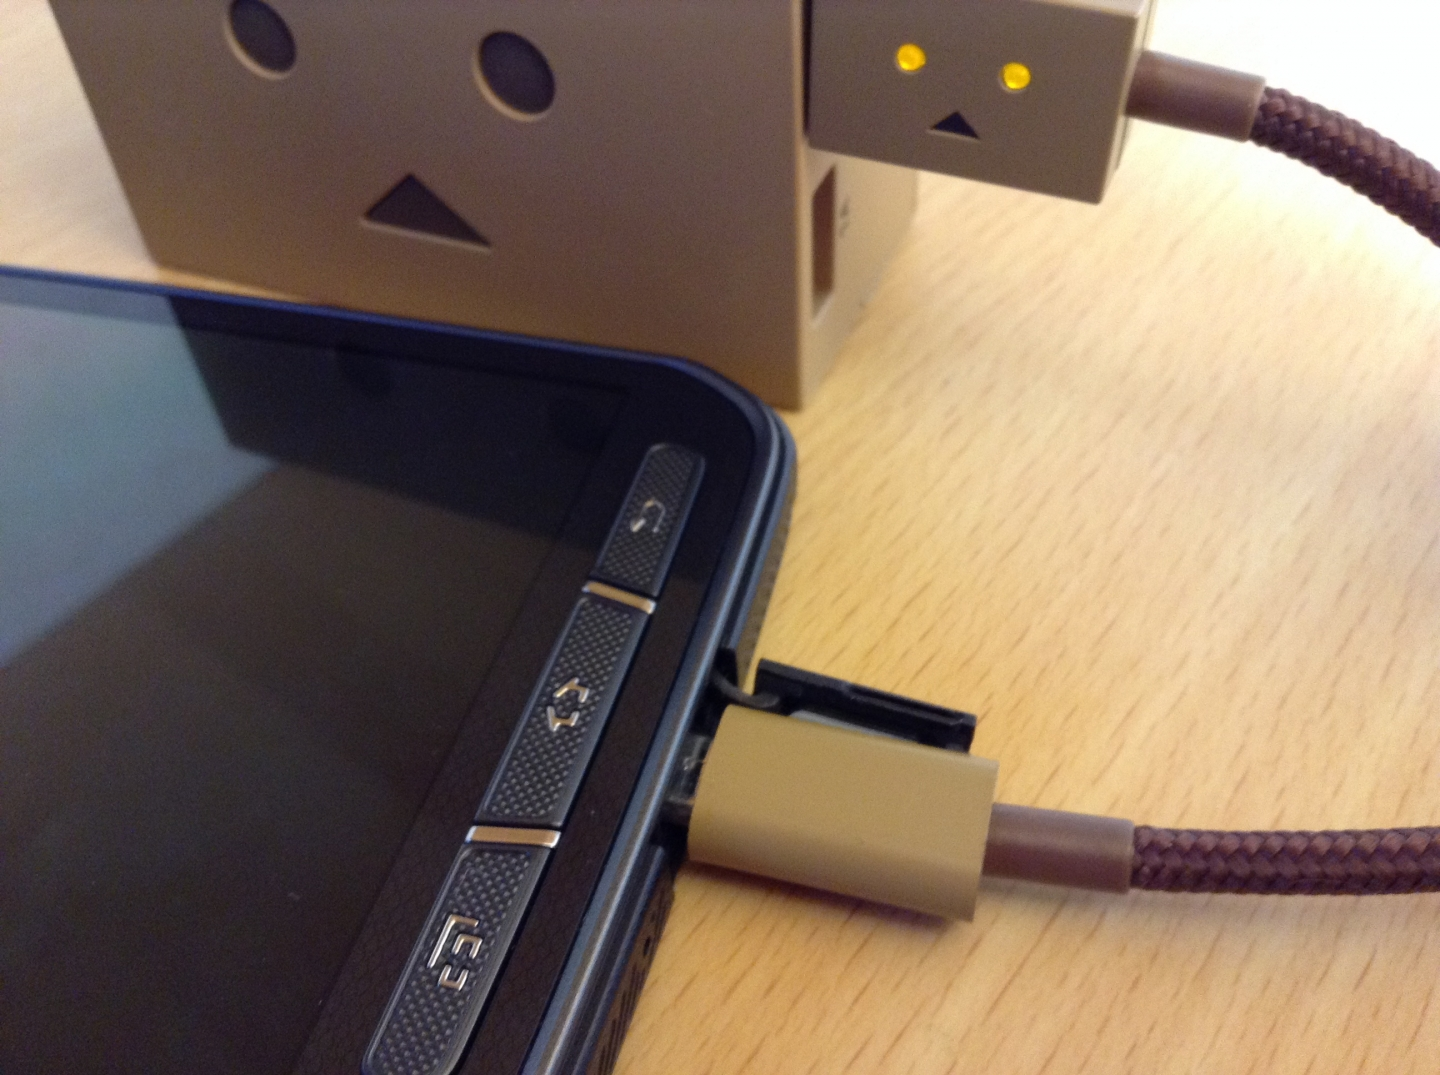 cheero-danboard-usb-cable-with-micro-usb-connector_5